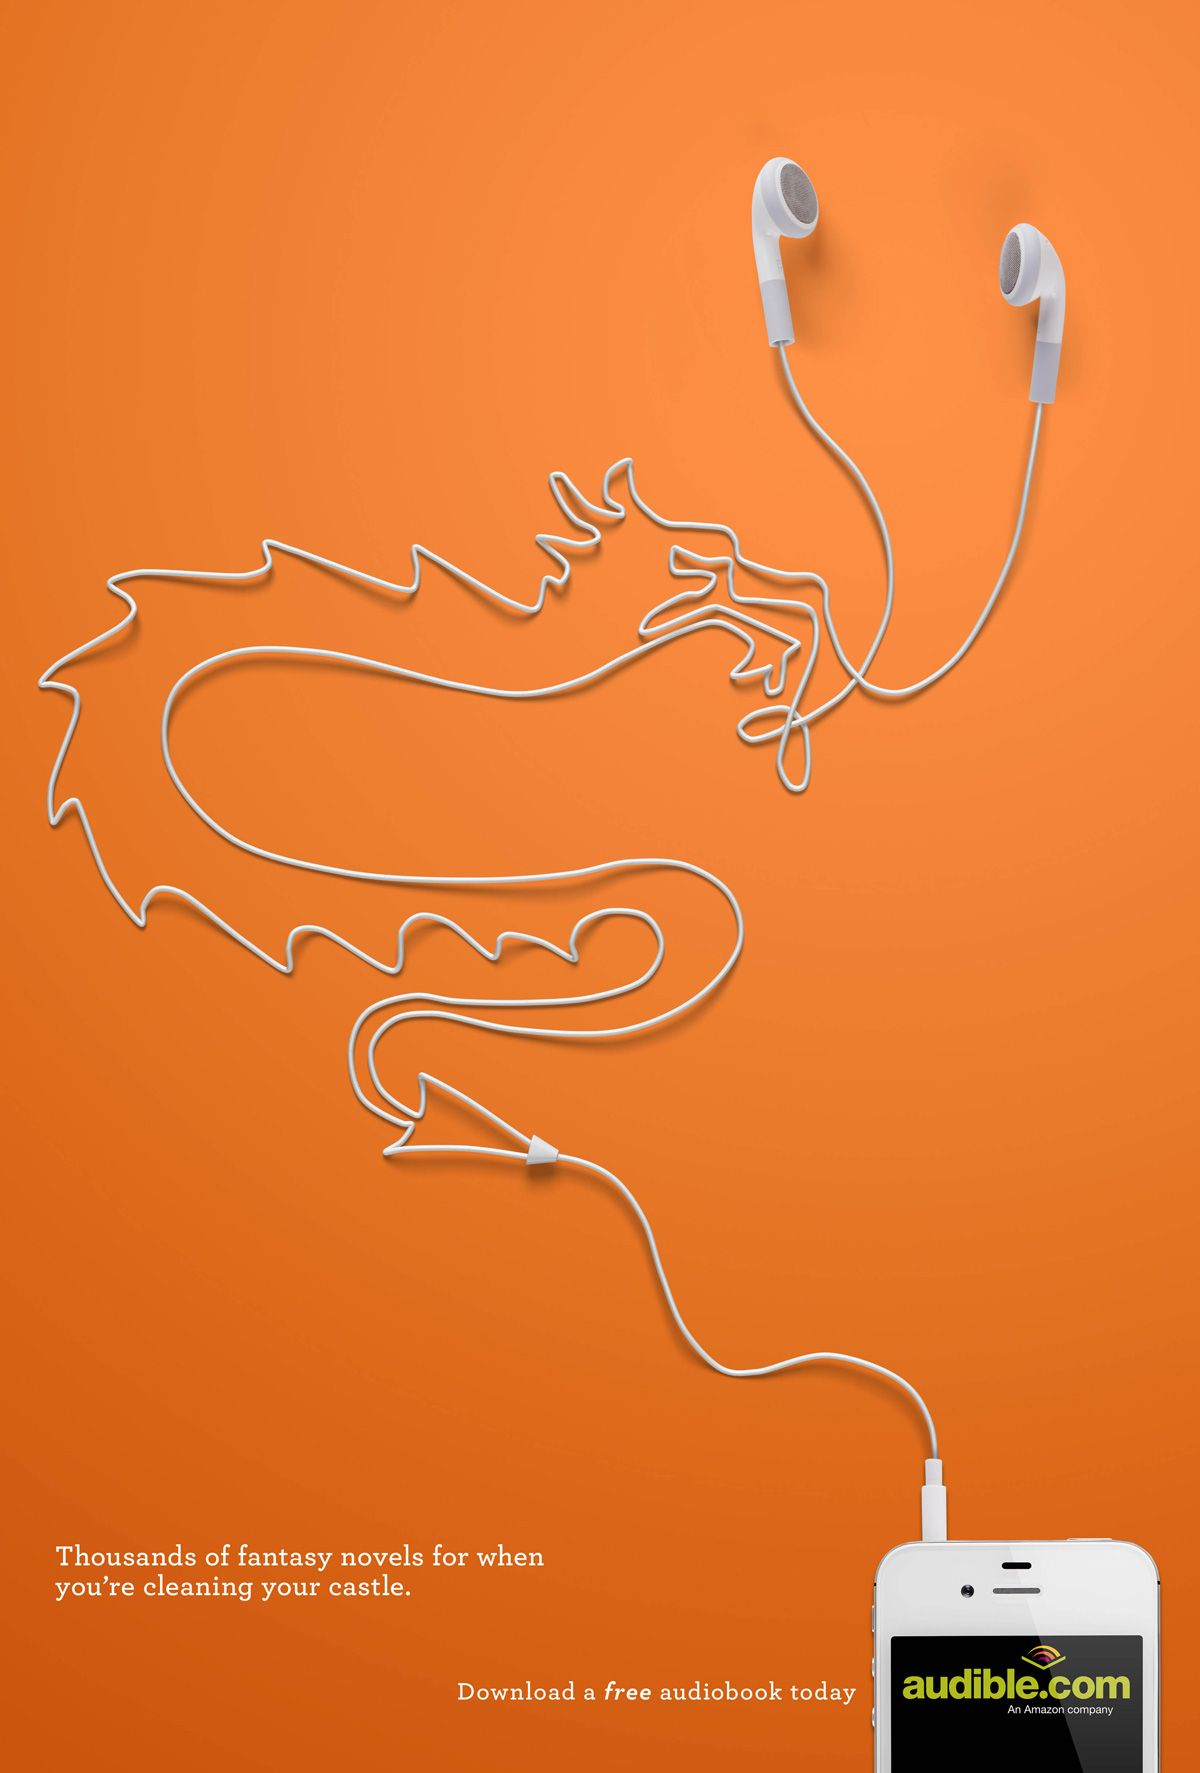 Audible-Dragon.jpg (1200×1773)